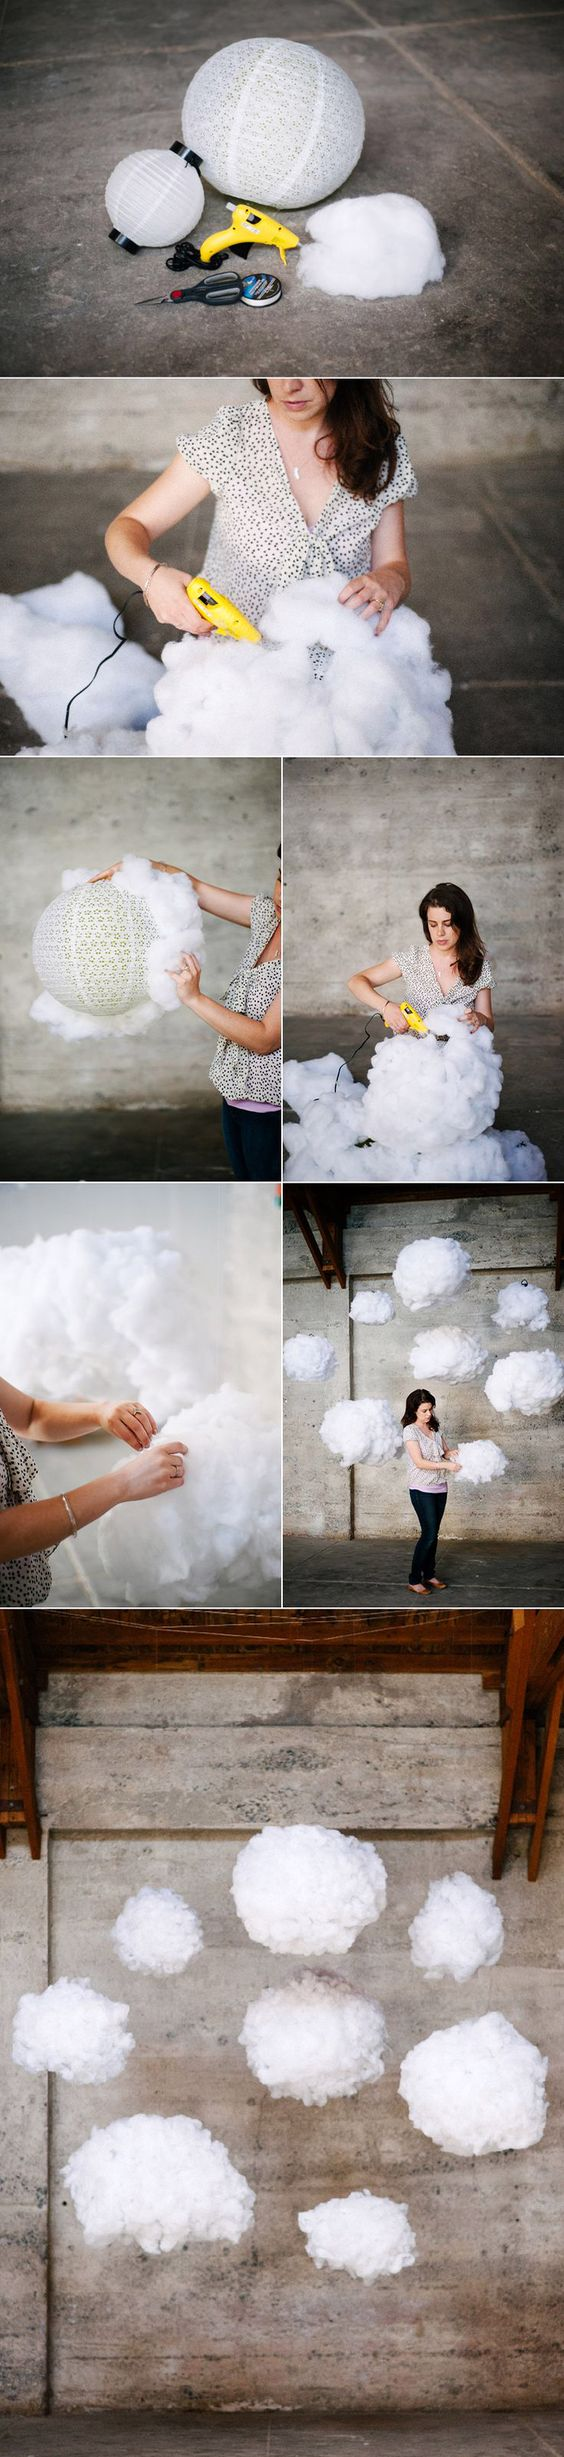 suspension luminaire nuage boule colle coton tutoriel